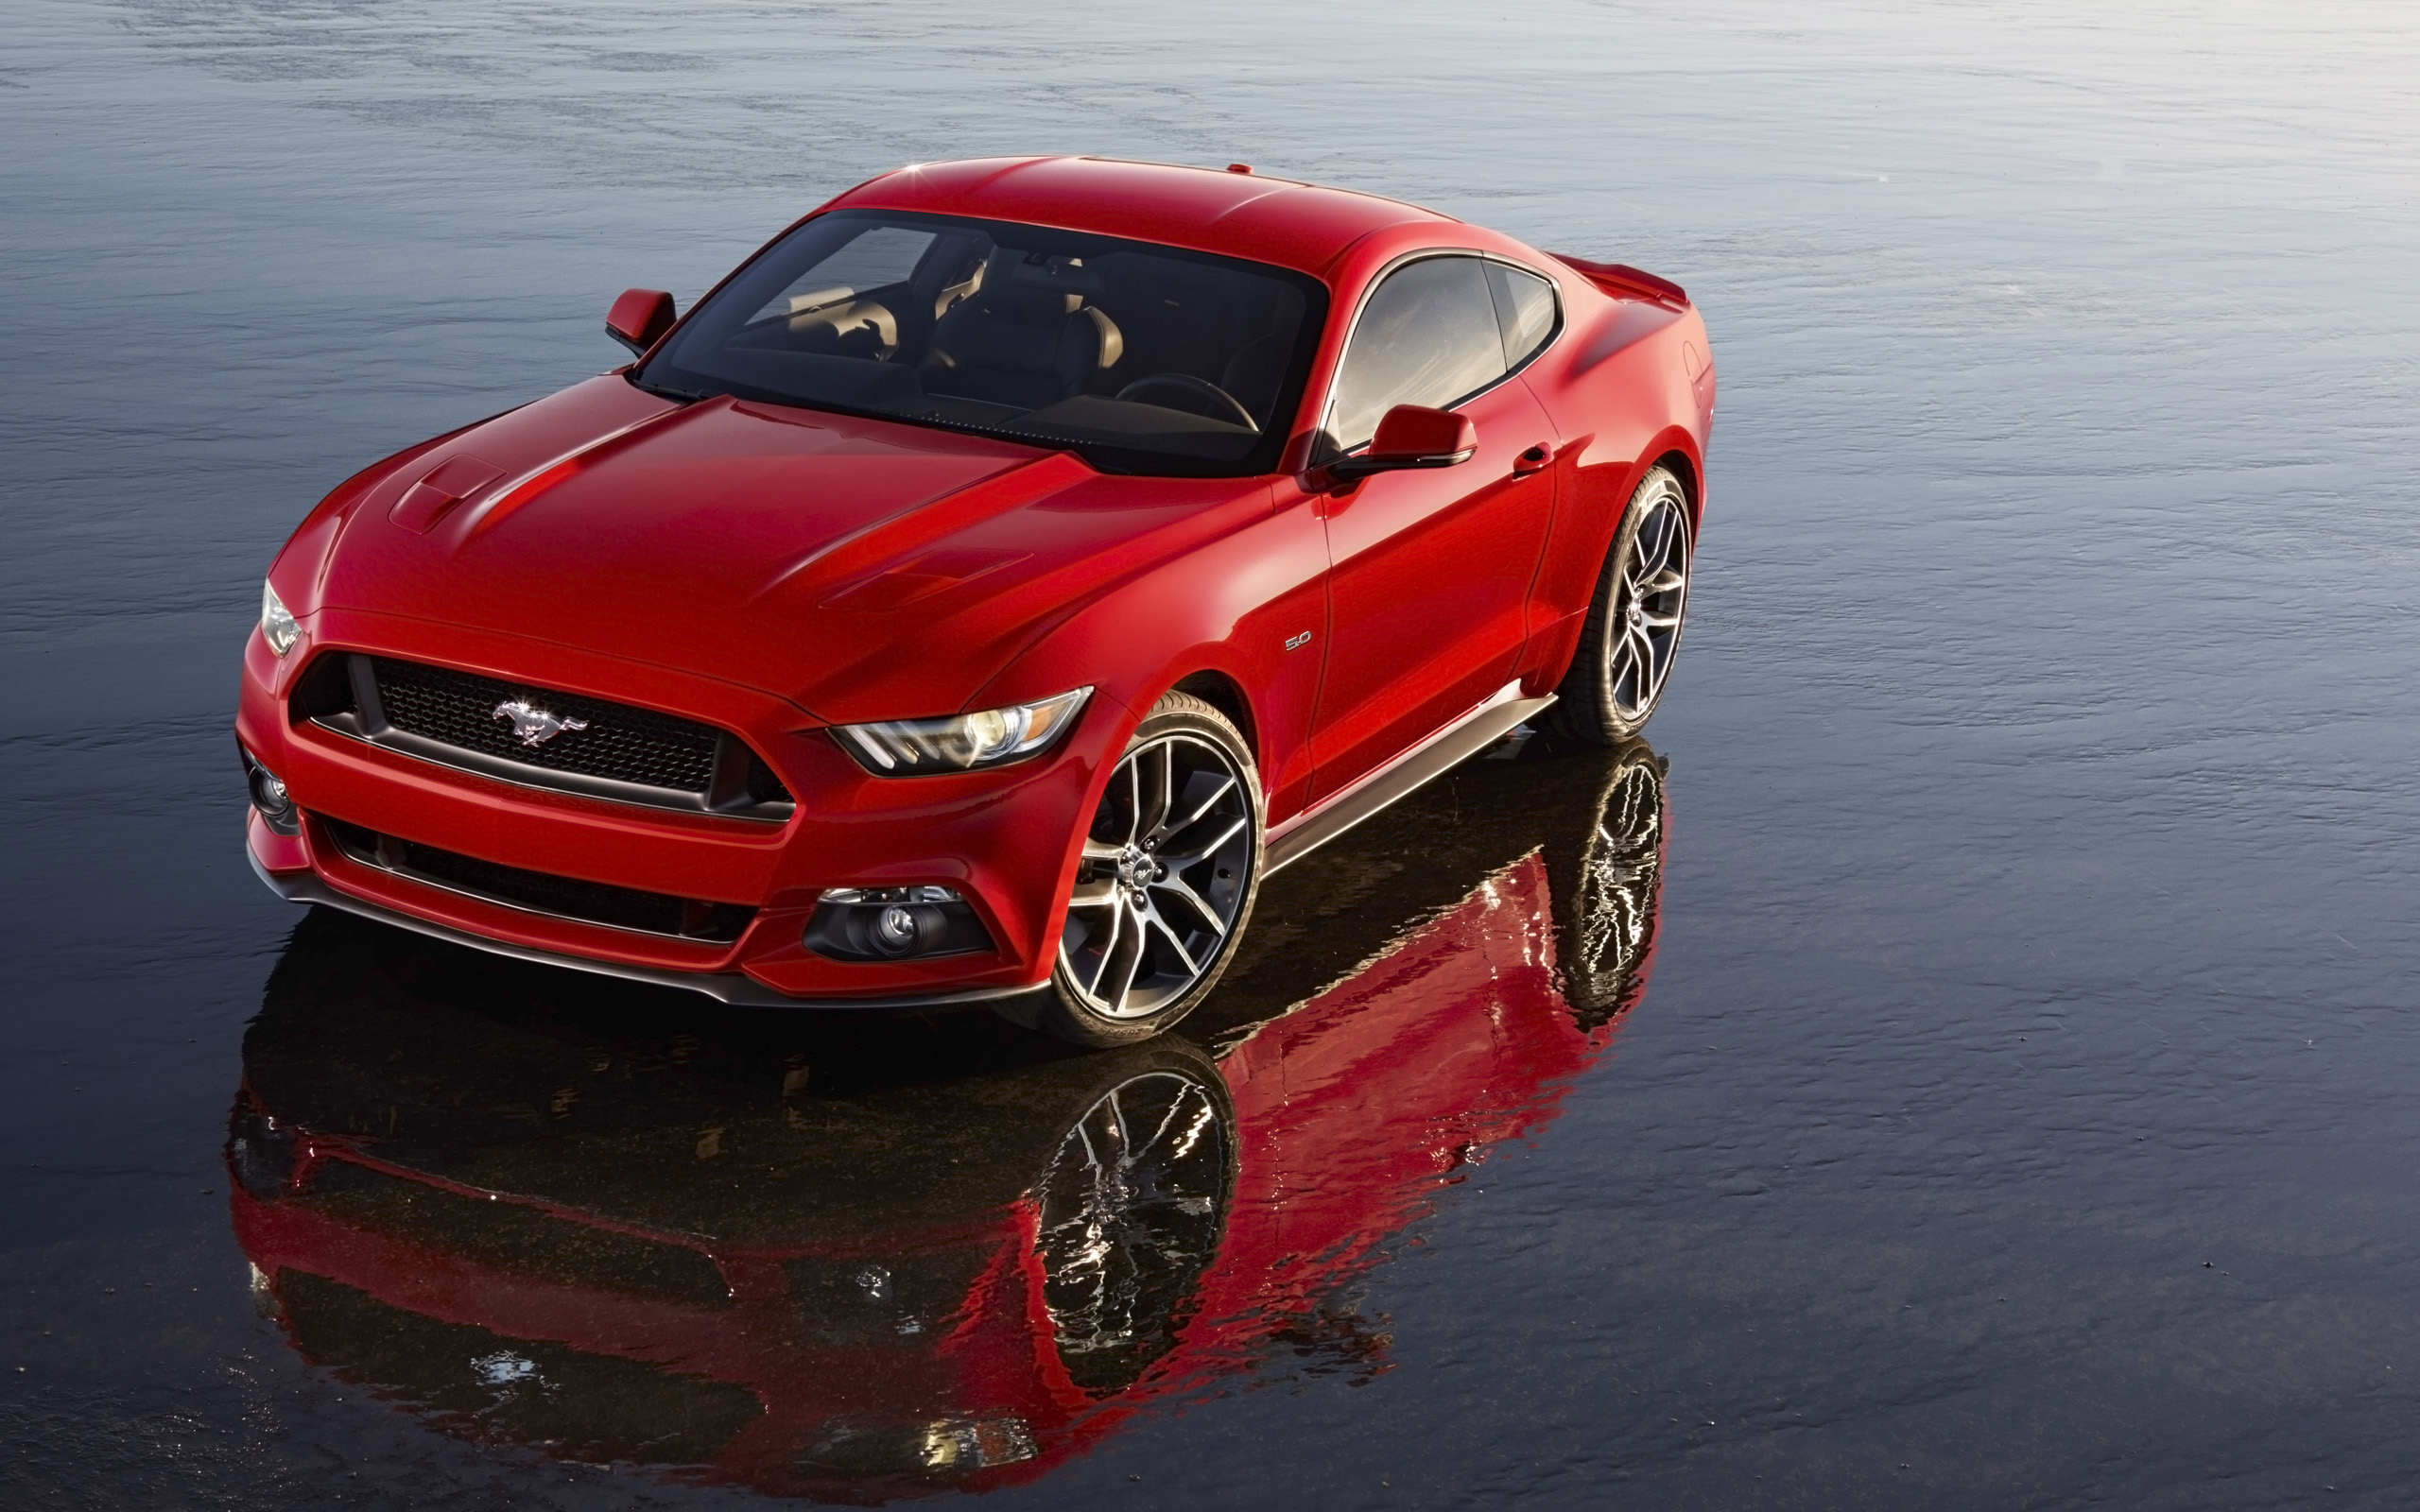 2015 ford mustang wallpaper | hd car wallpapers | id #3938